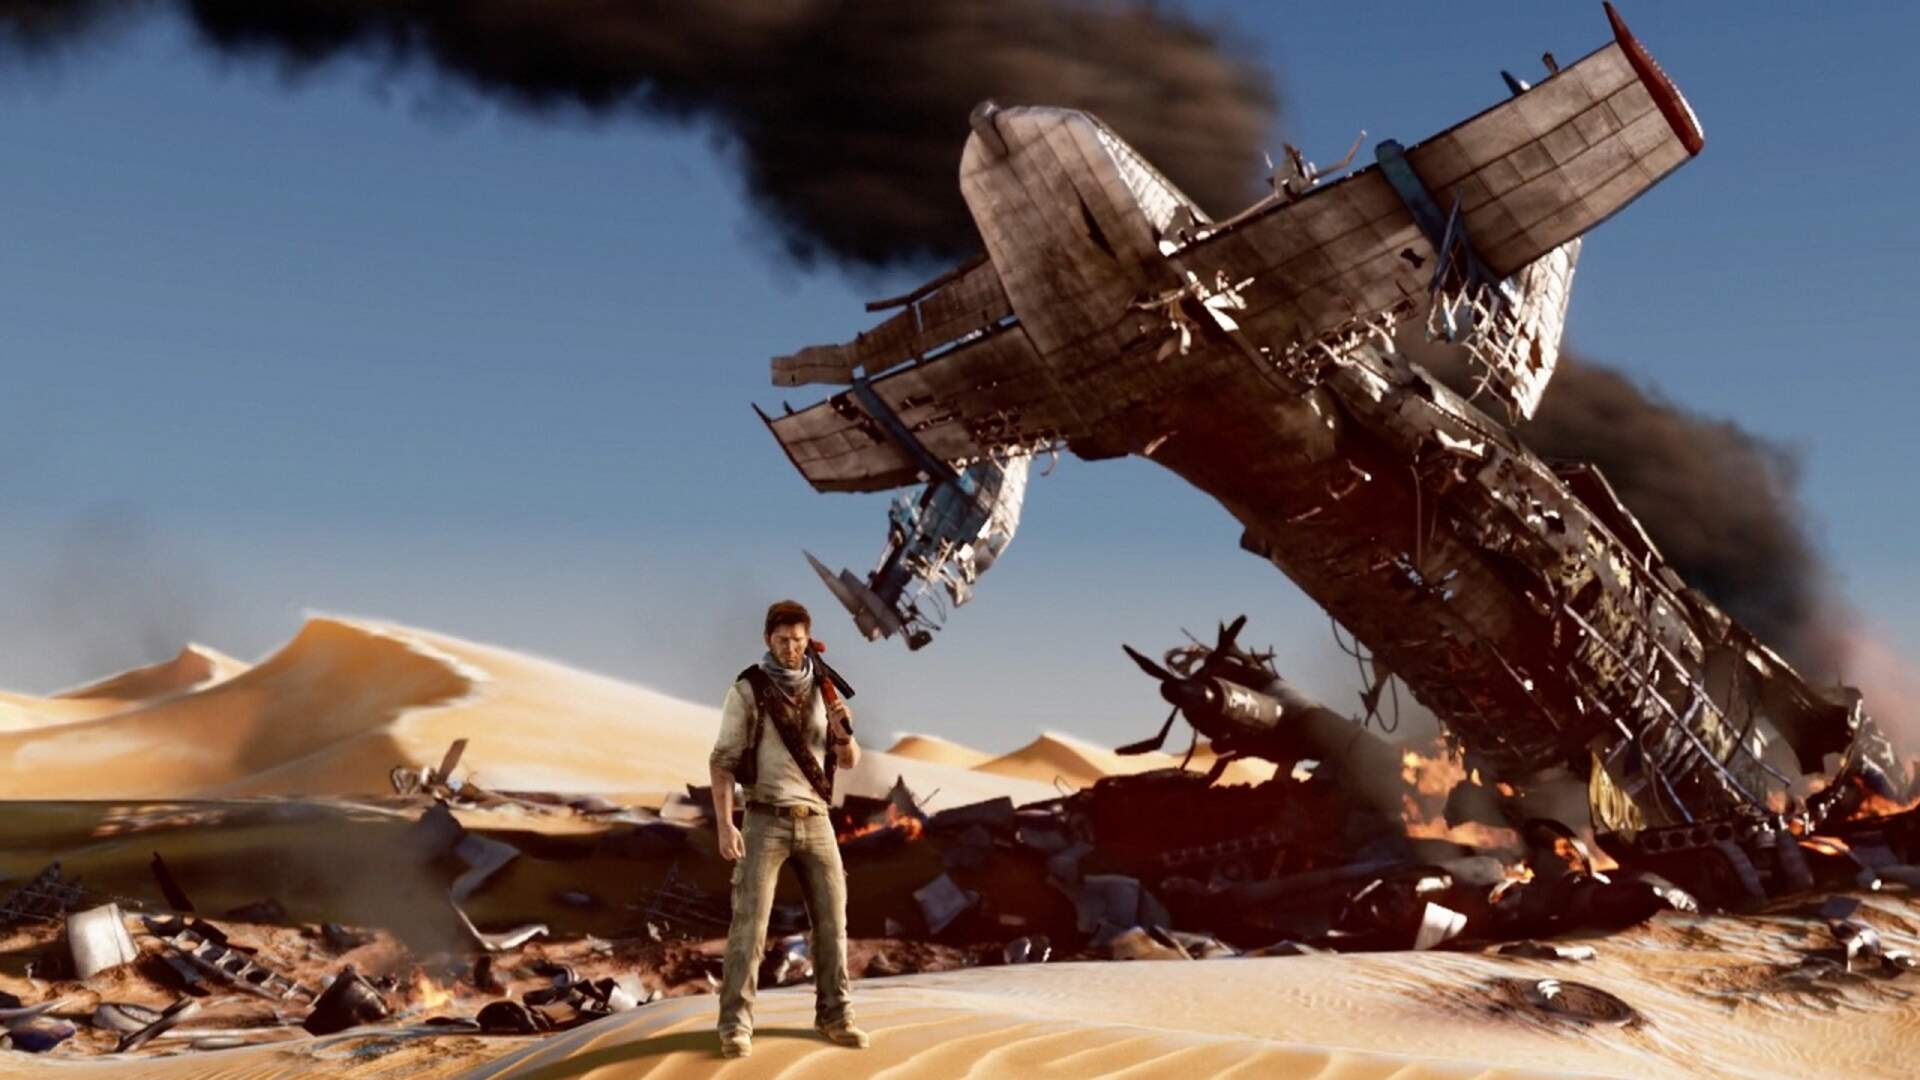 The Troubled Uncharted Movie Finally Gets a 2020 Release Date